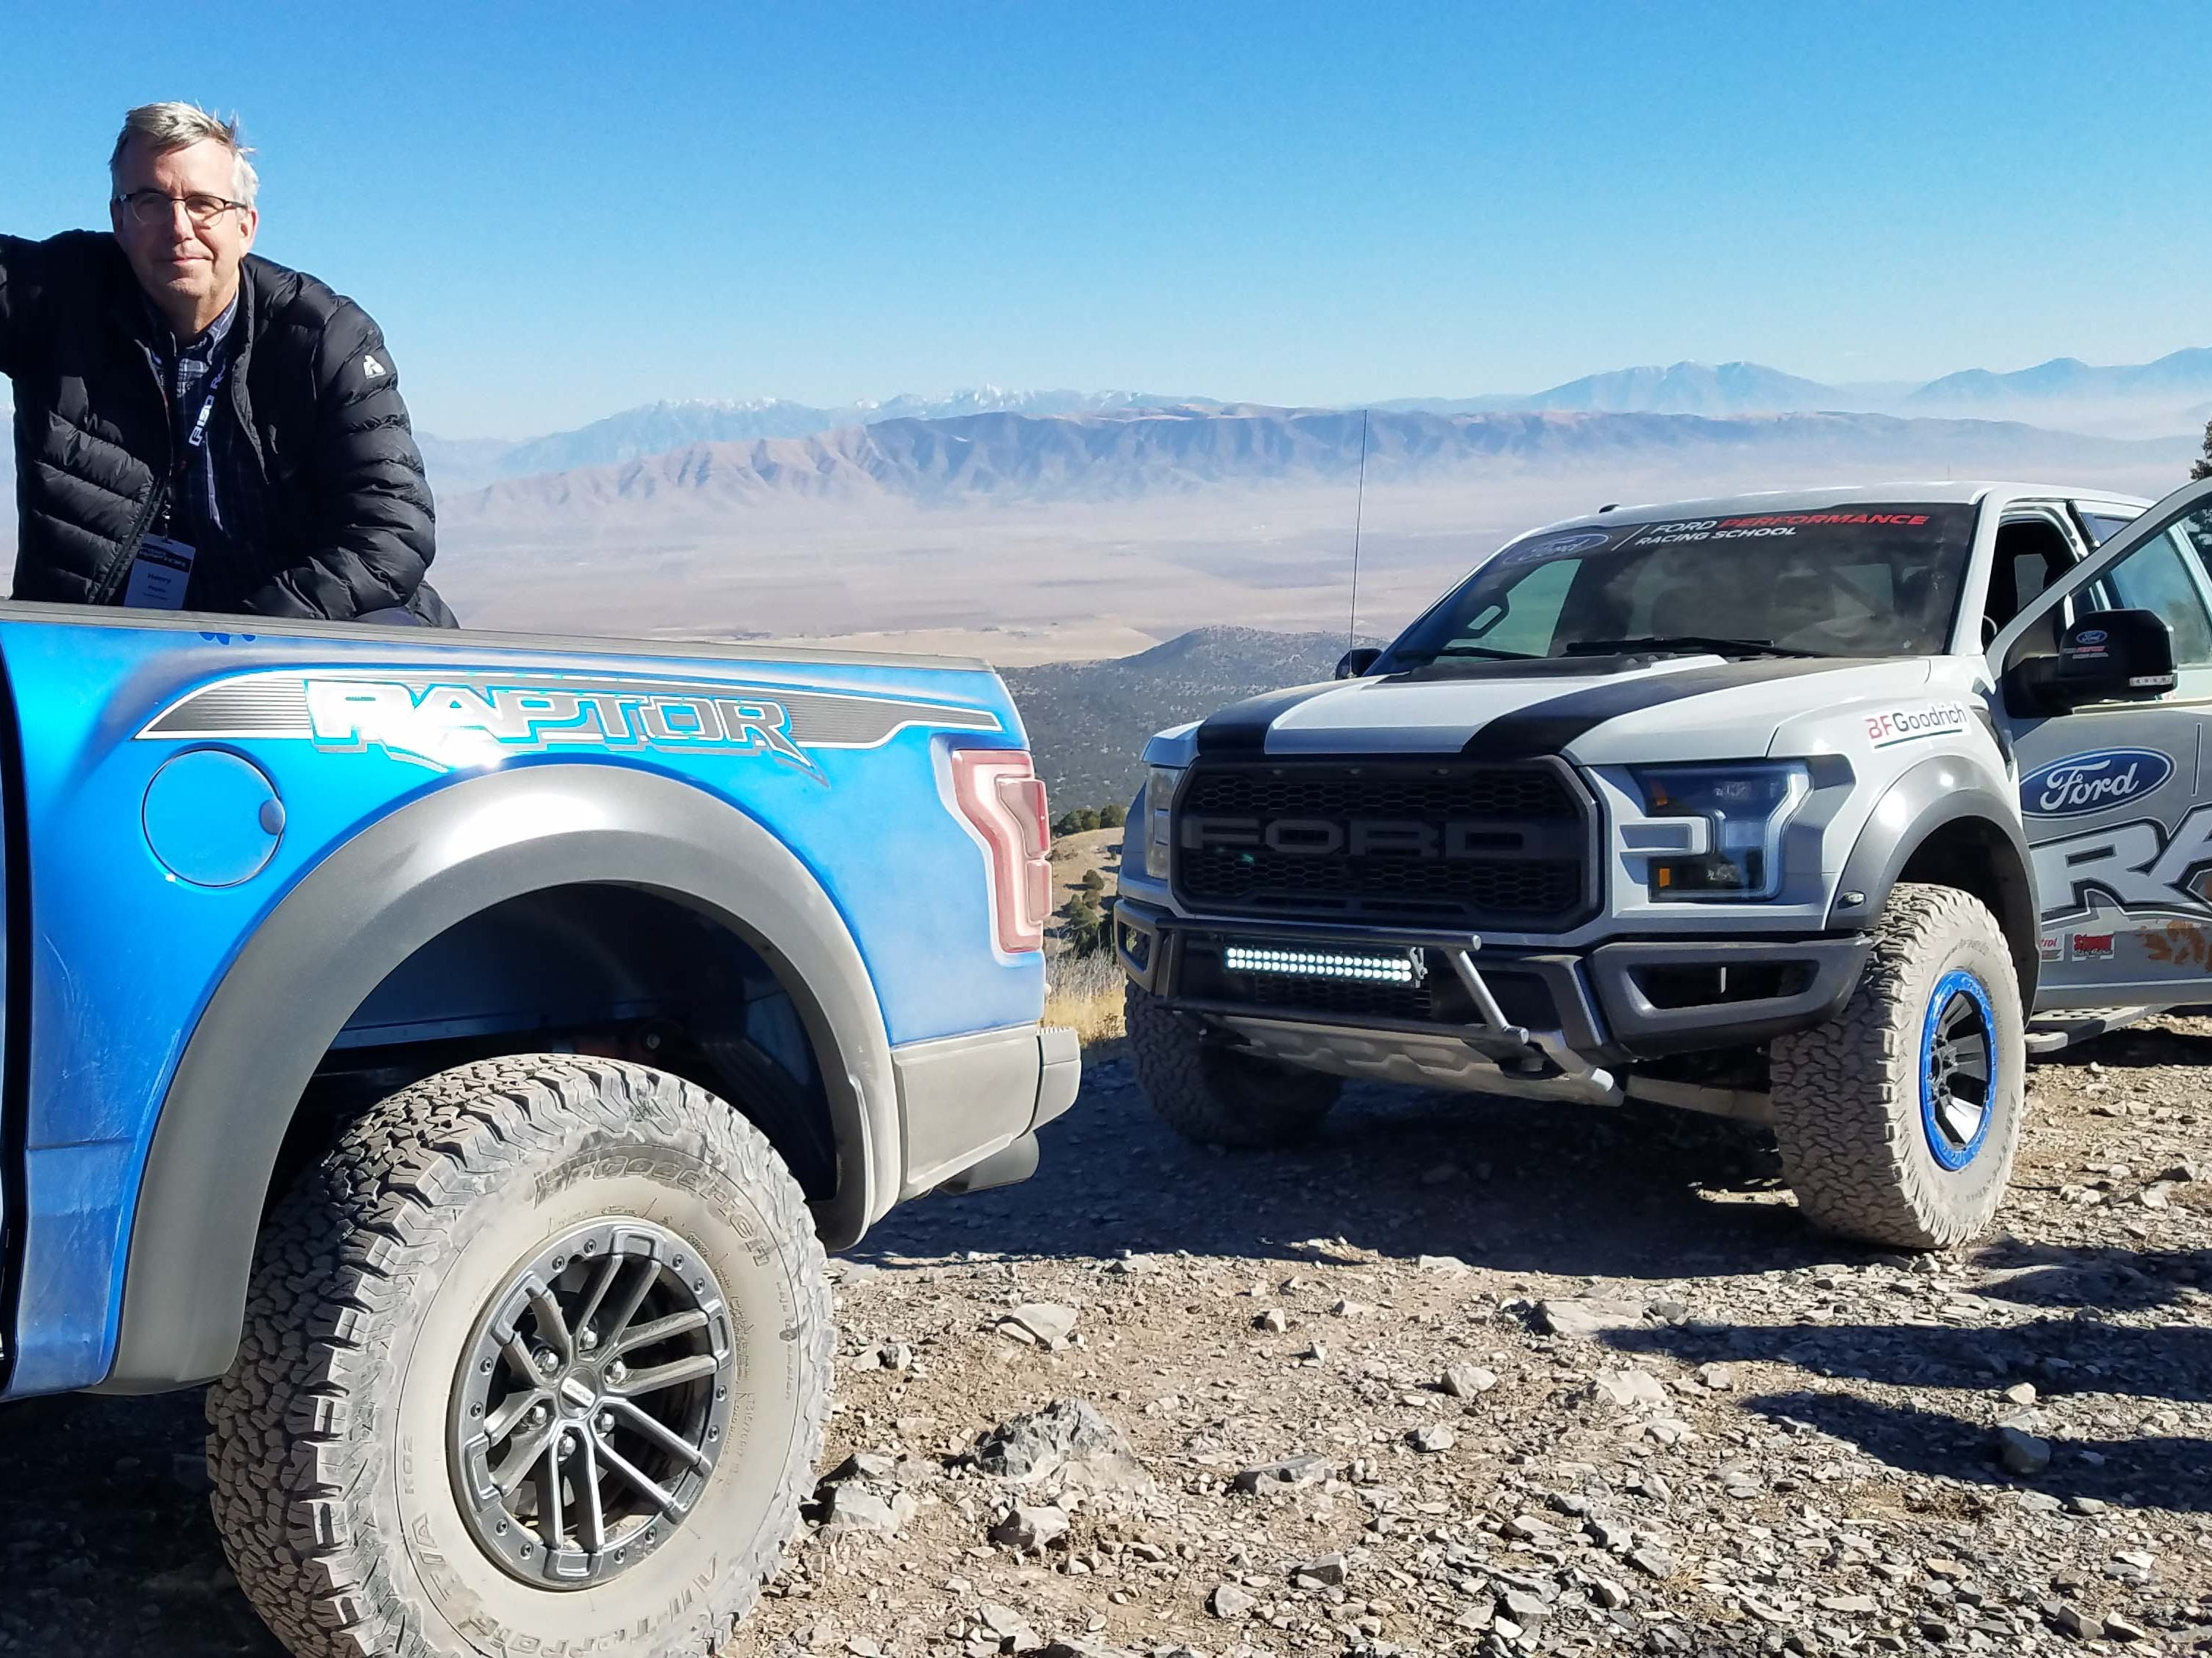 Detroit News auto critic Henry Payne took the 2019 Ford F-150 Raptor up the Wasatch Mountains outside of Salt Lake City, Utah.